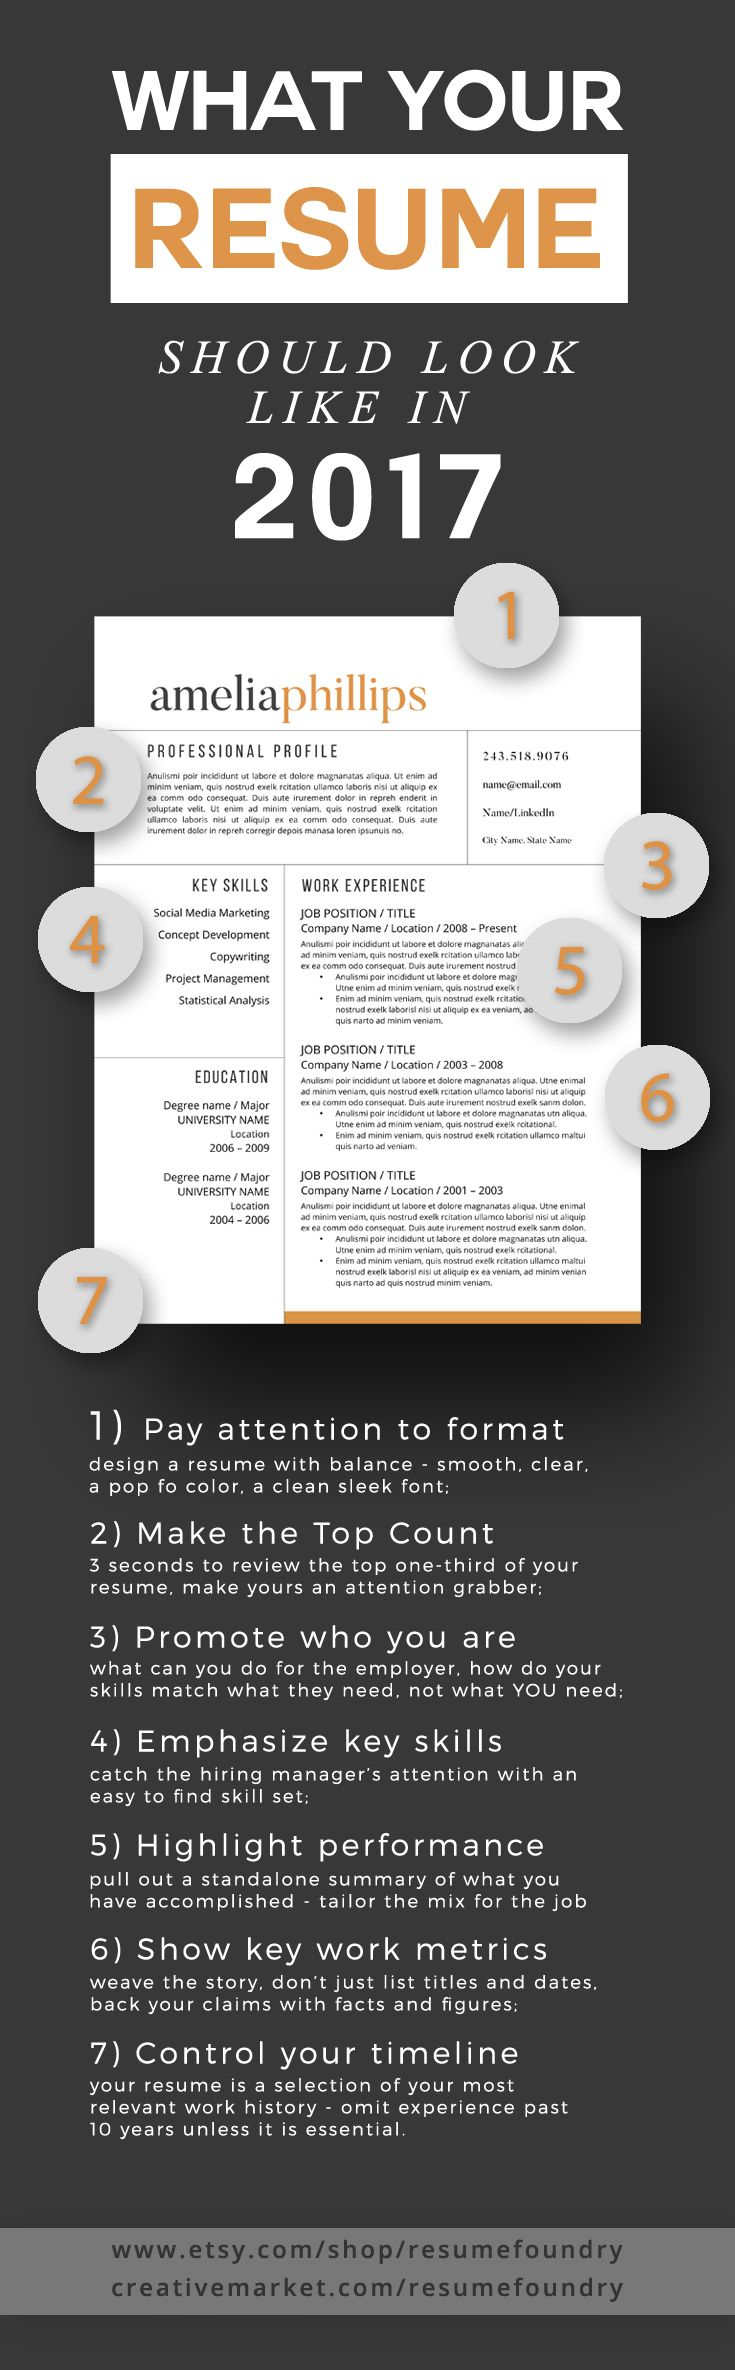 A Job Resume Cool Best 107 Job Search Images On Pinterest  Resume Advertising And .